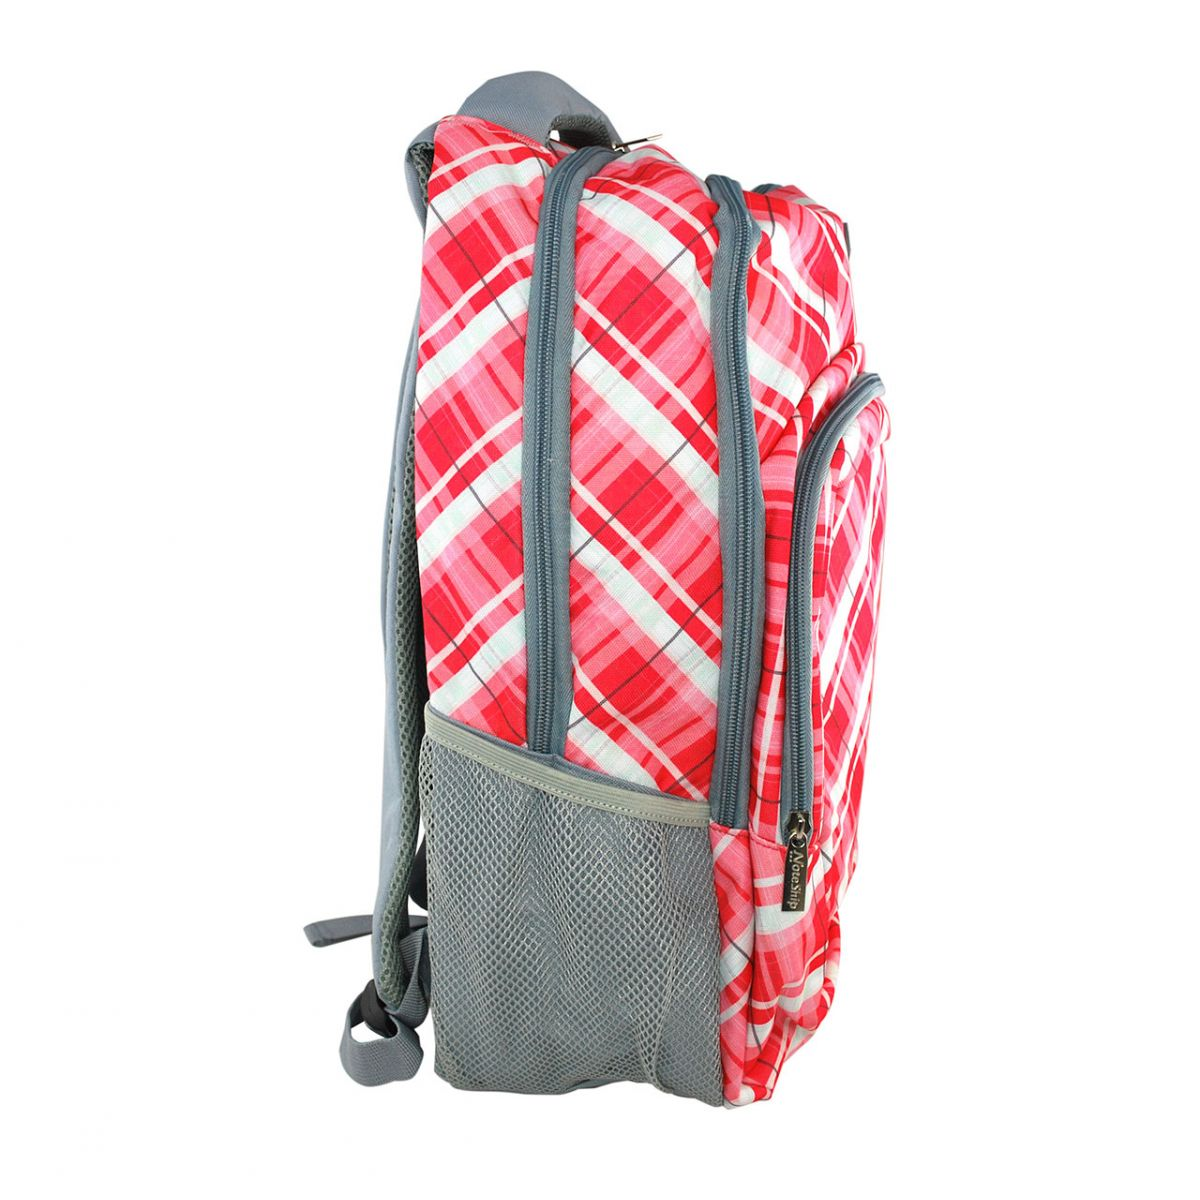 Mochila para Notebook 15.4 Notebag Missy 1986 - Leadership